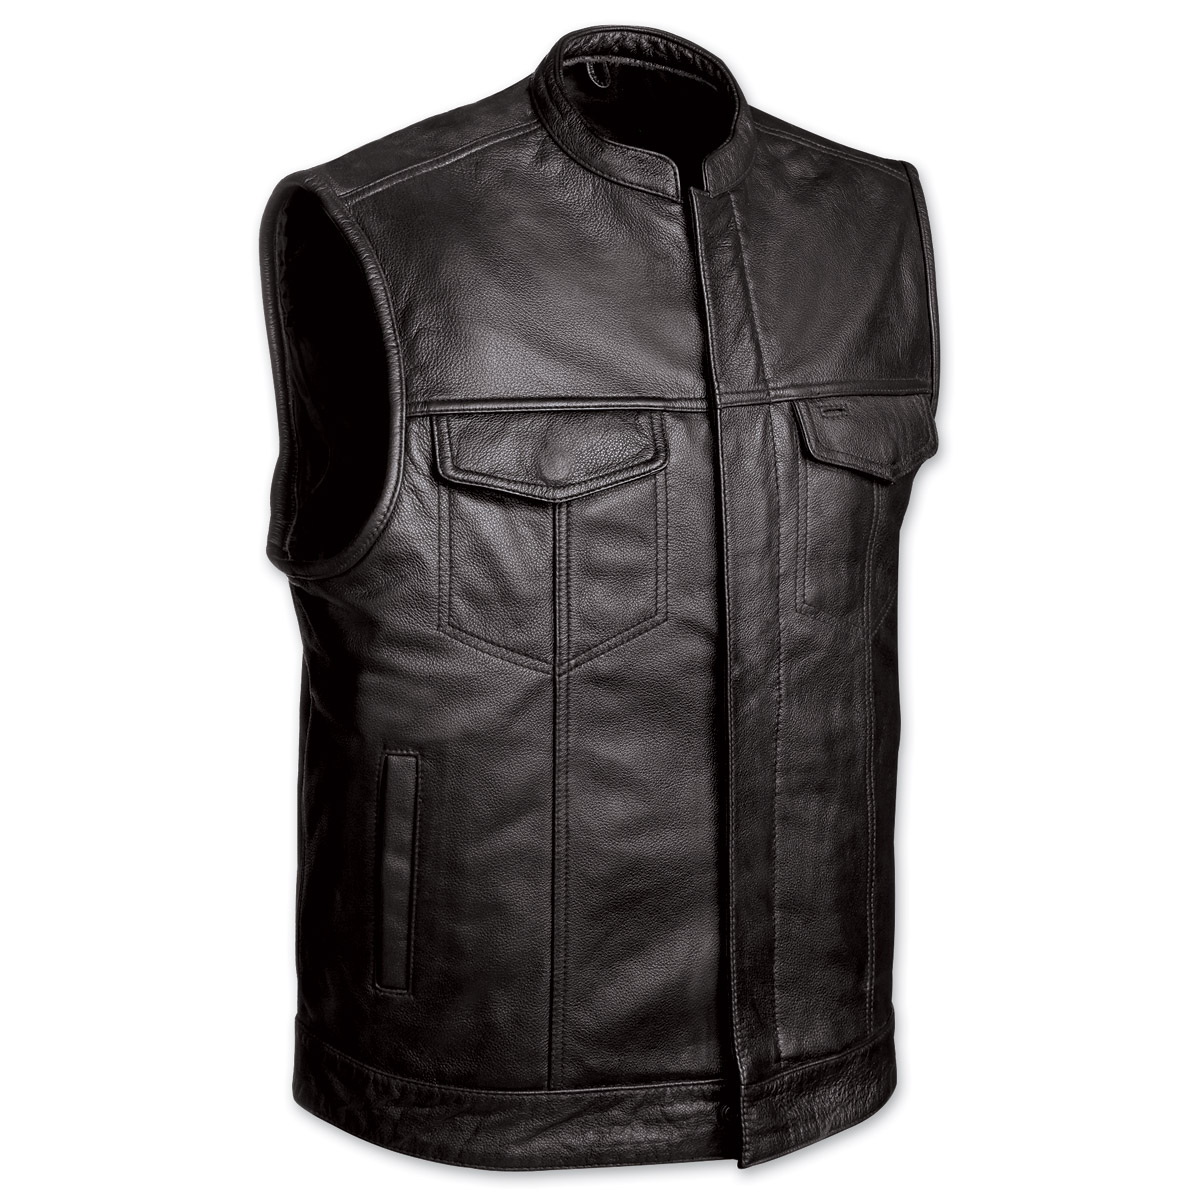 Why you should take care of your black leather vest ?